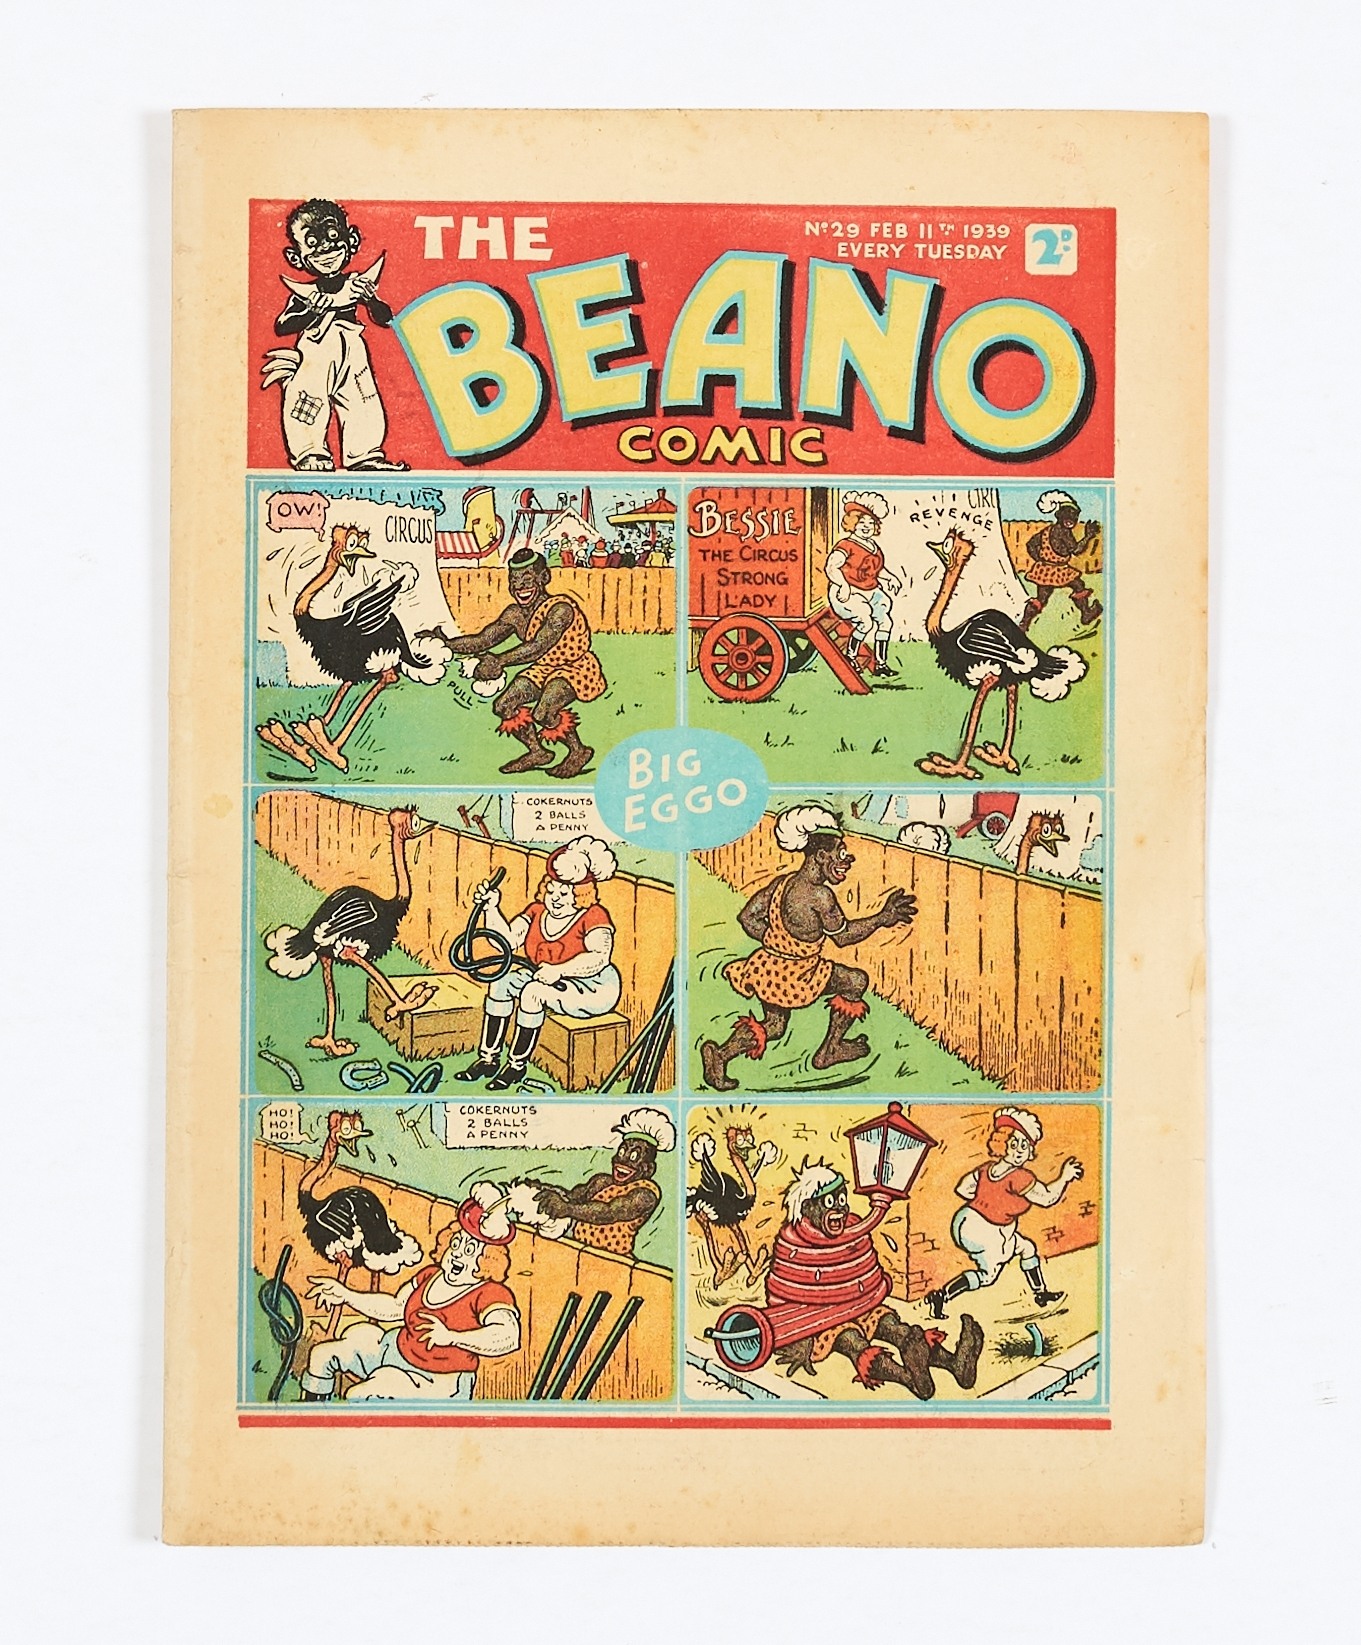 Lot 23 - Beano No 29 (1939). Bright covers, cream/light tan pages [fn-]